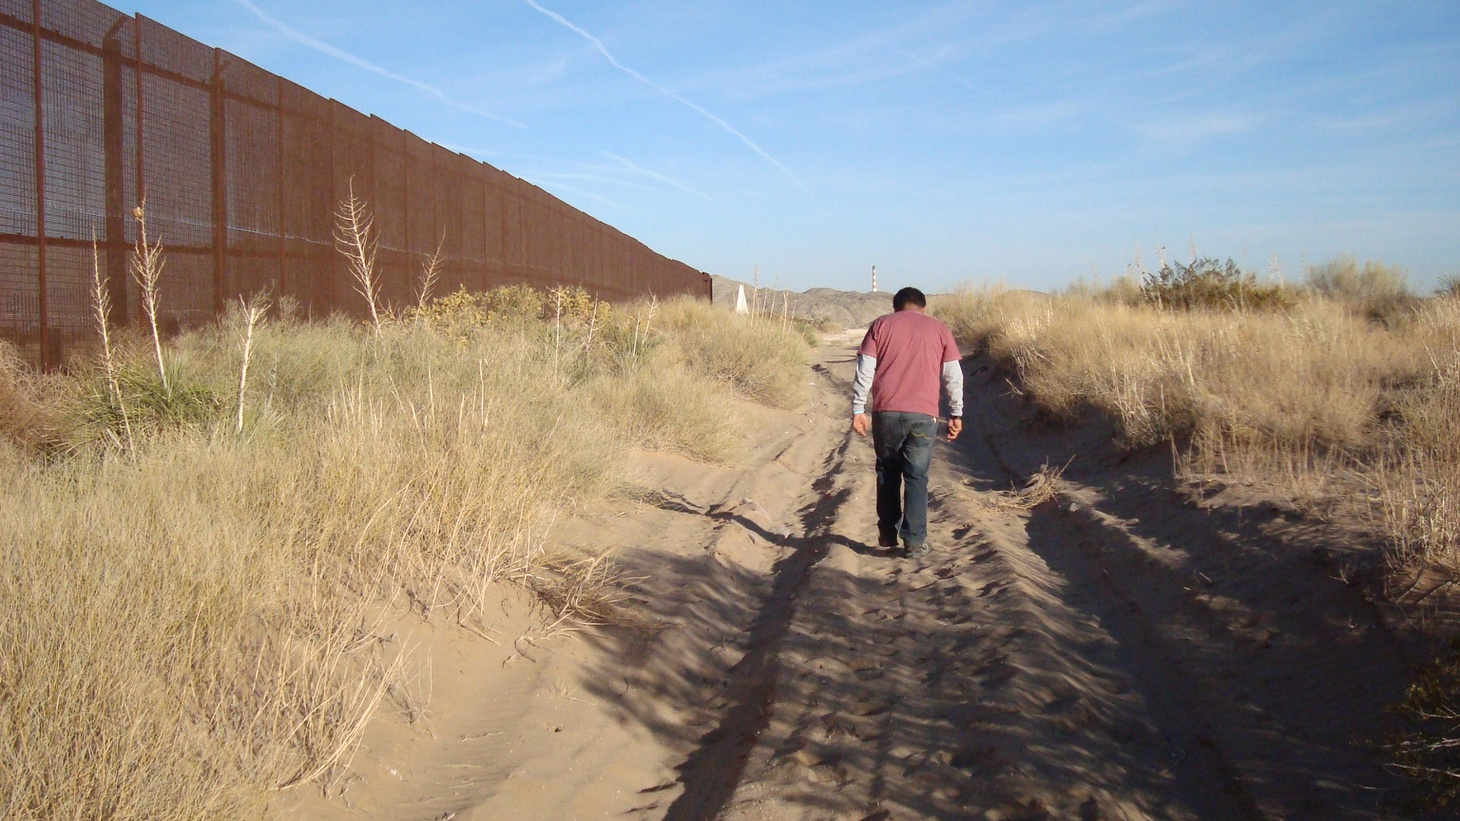 Donald Trump's wall to keep undocumented Mexican immigrants out of the country might have unintended consequences as the flow migrants appears to be changing directions.